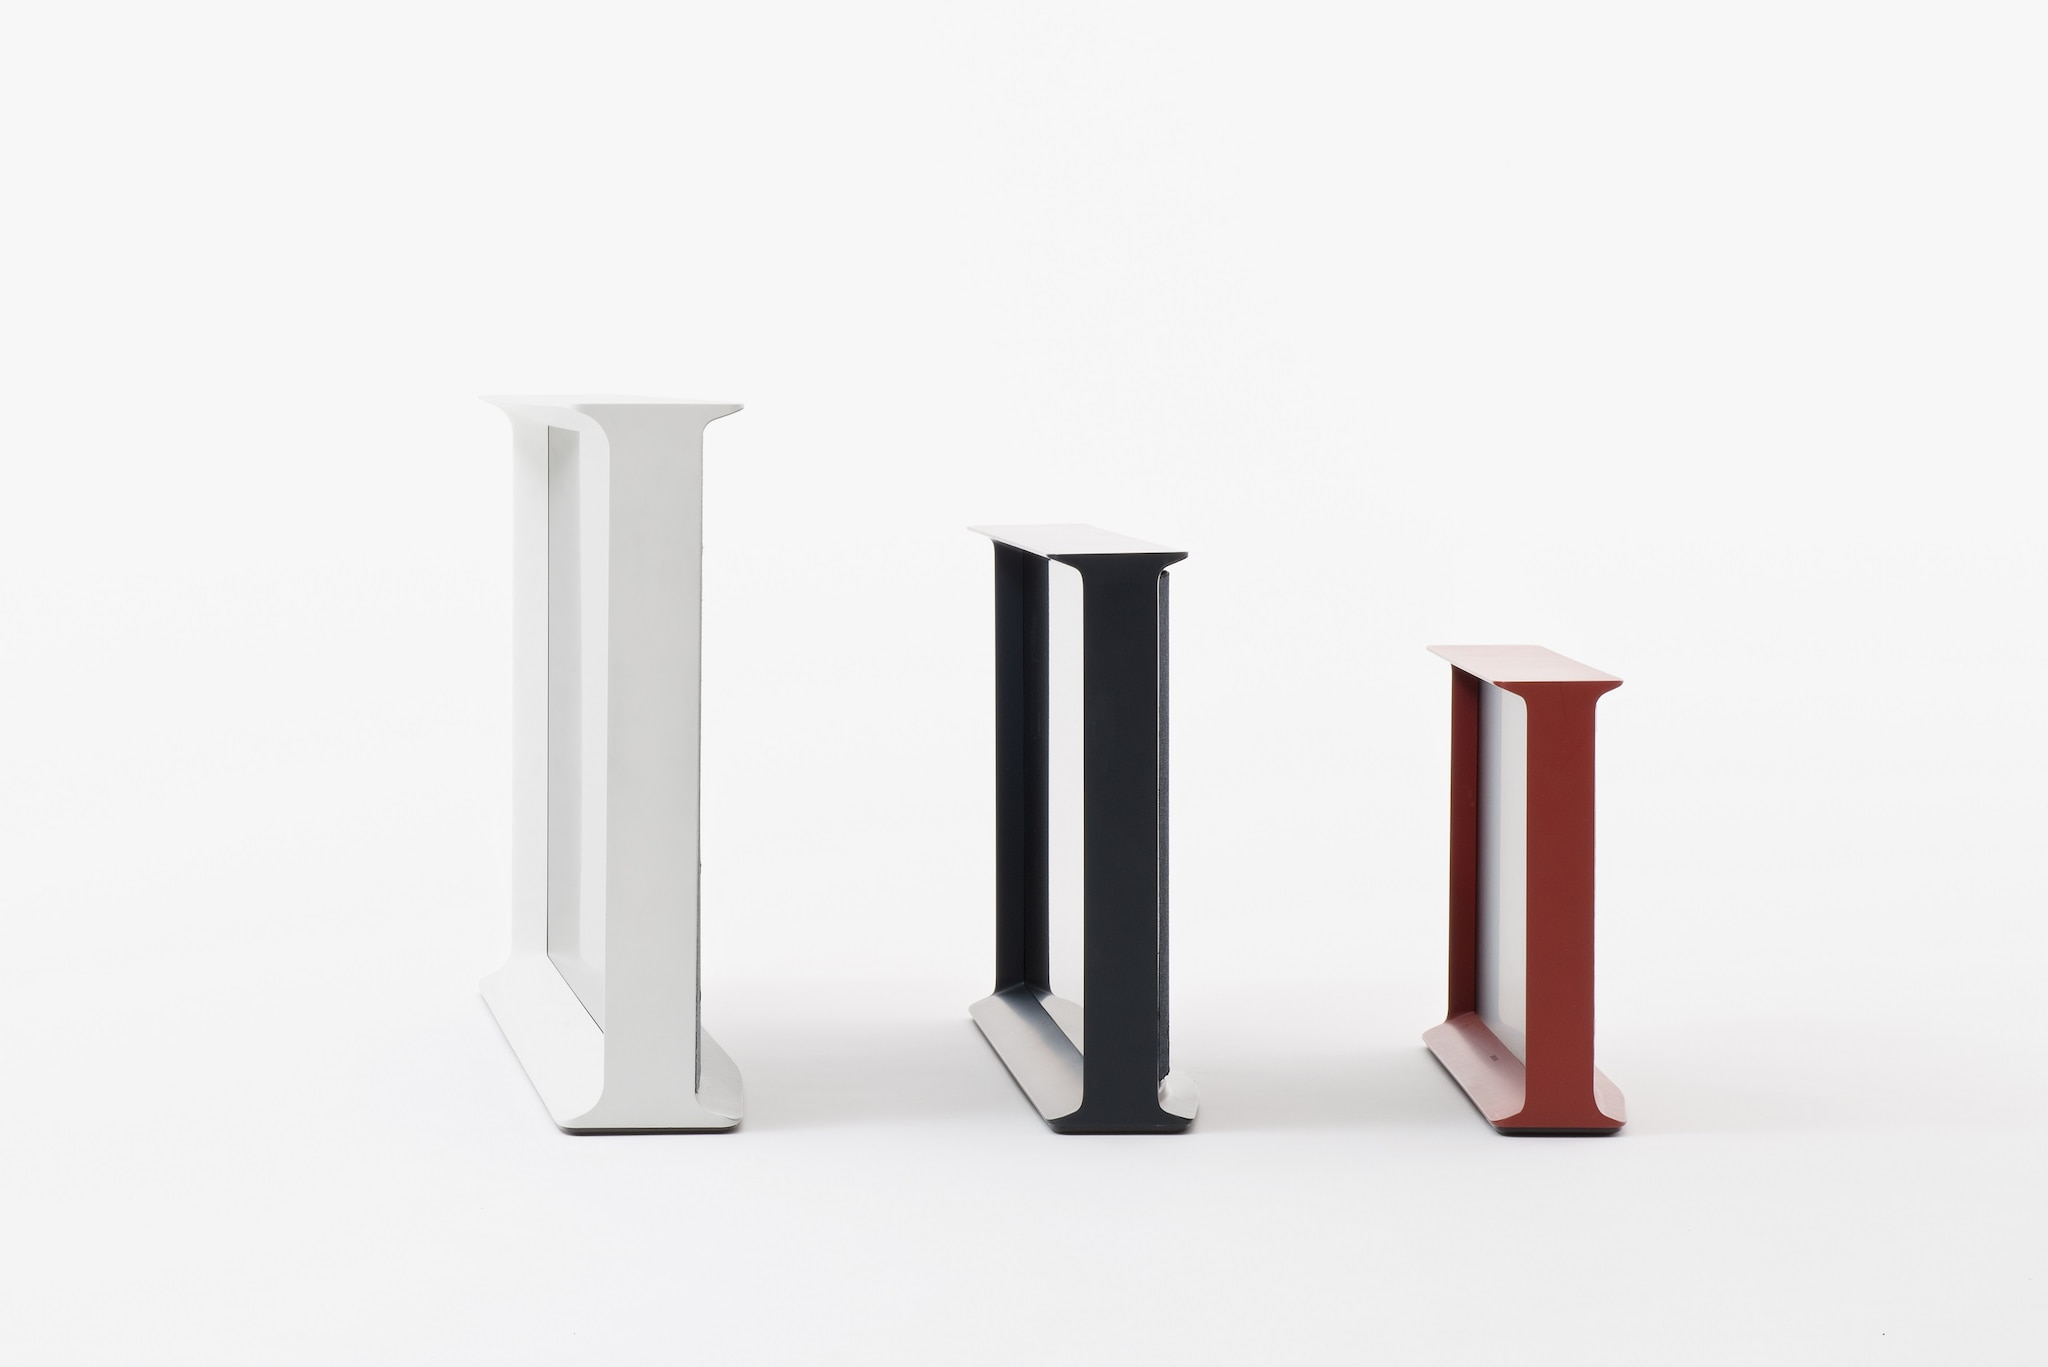 Samsung Serif TV, by the Bouroullec brothers